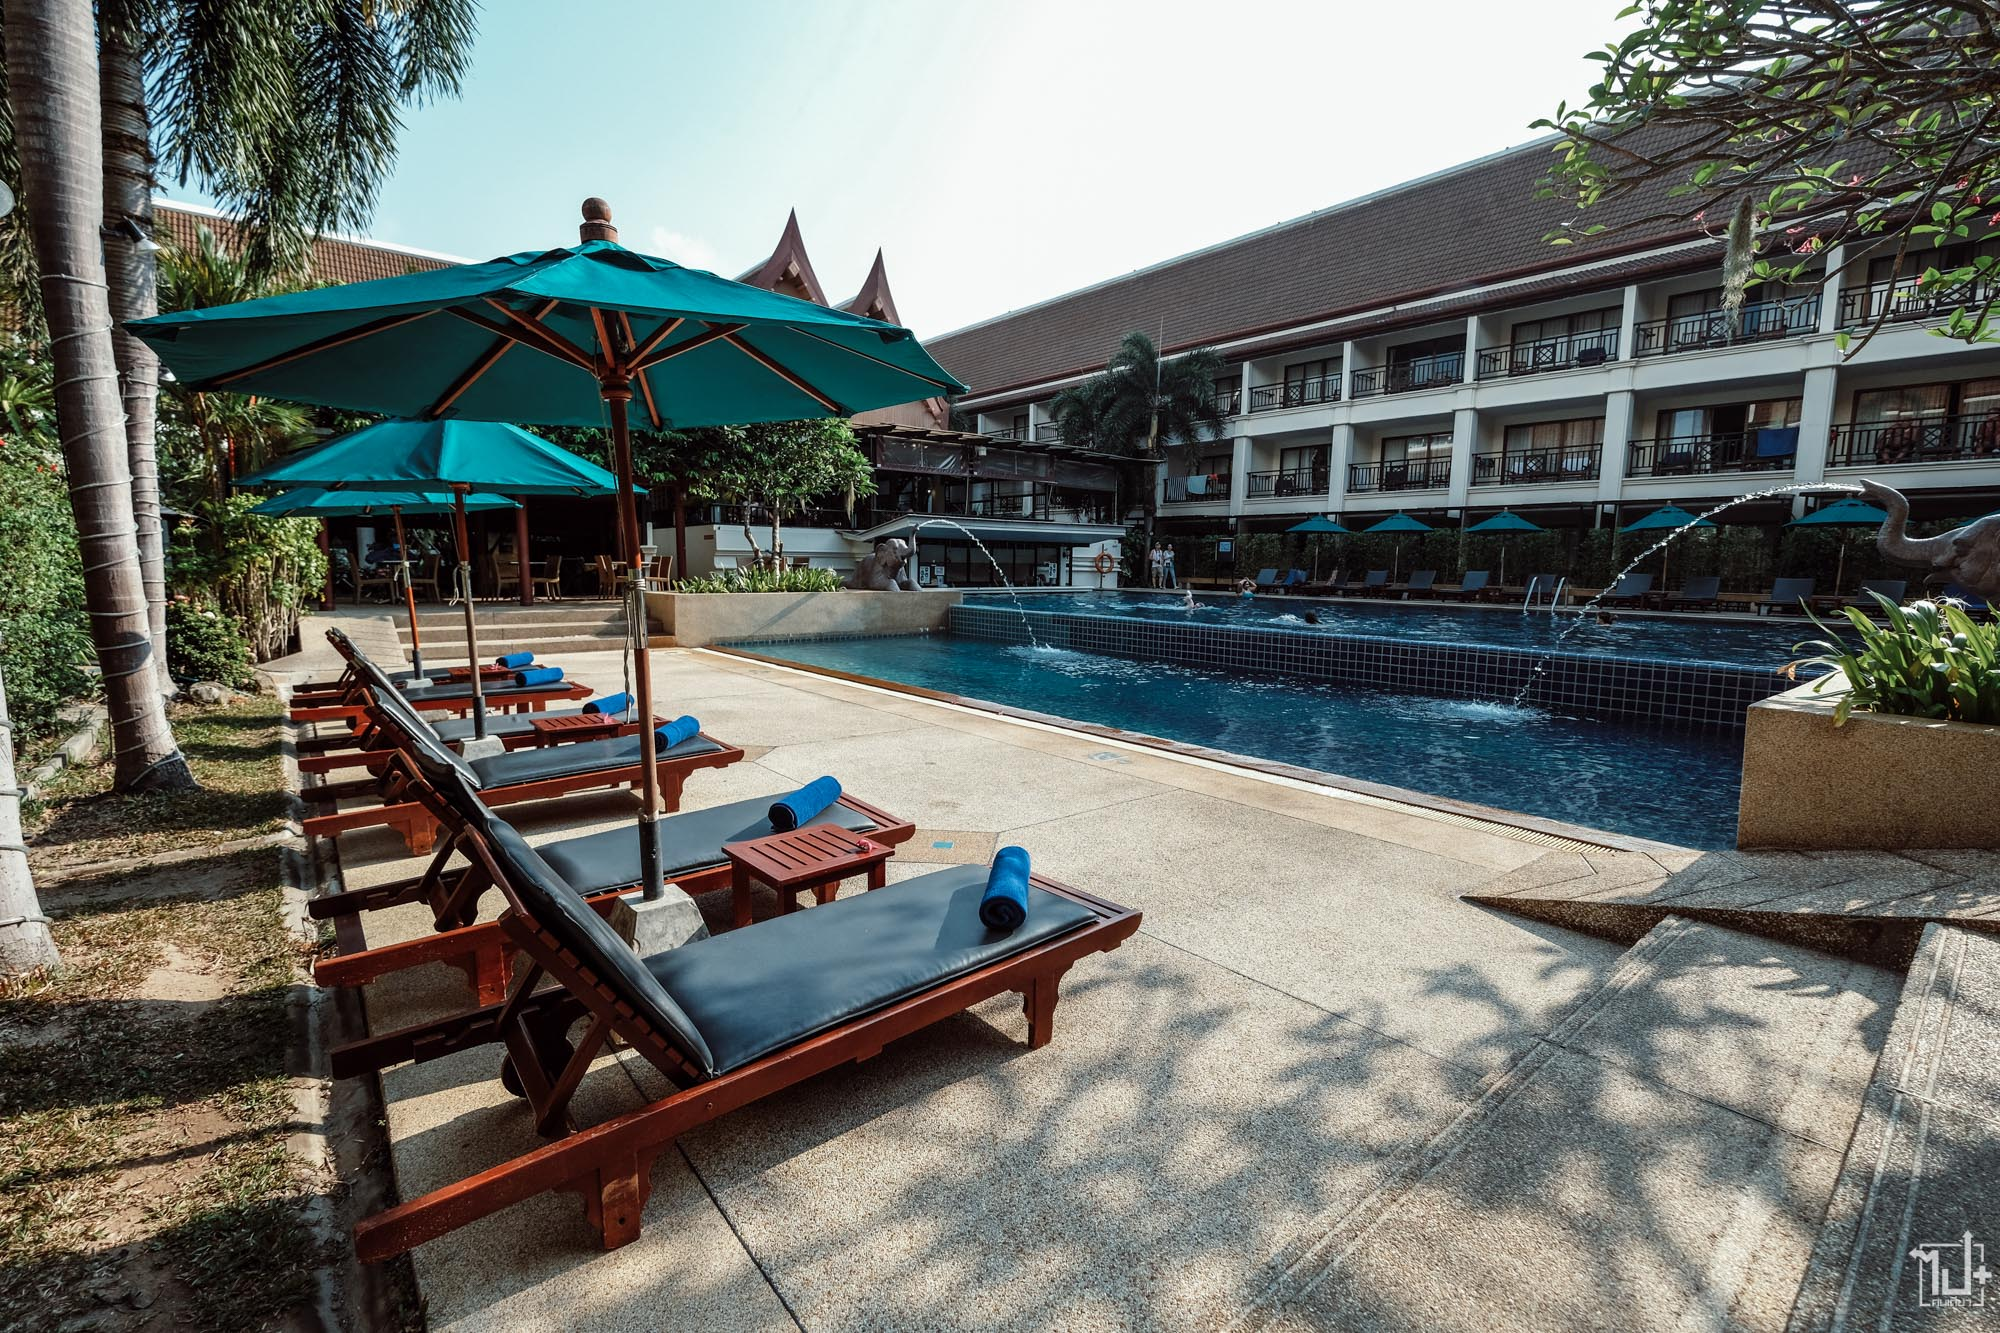 DeevanaPatongResortSpa, DeevanaPatong, Deevana, Patong, DeluxewithJacuzzi, ป่าตอง, ภูเก็ต, ที่พักภูเก็ต, เที่ยวภูเก็ต, ที่พักป่าตอง